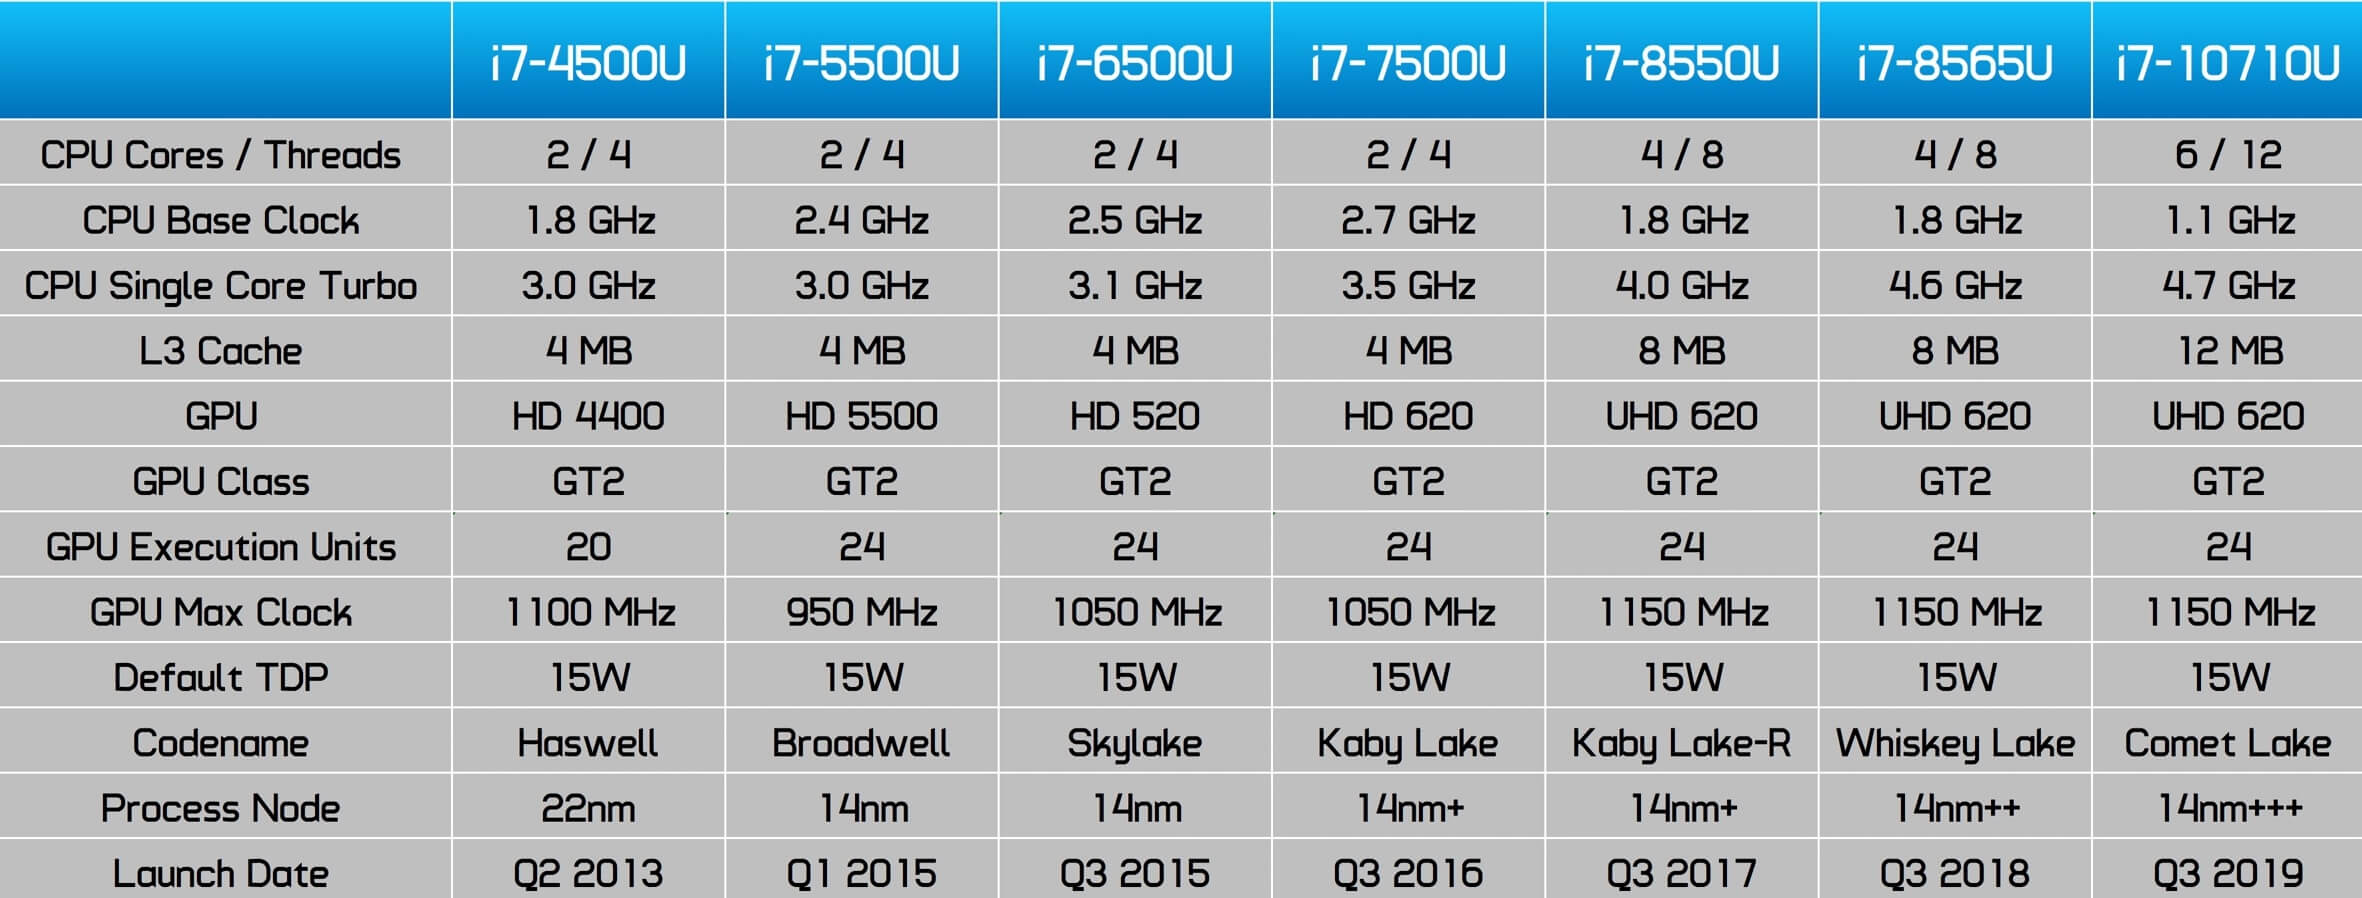 Intel Core i7-1065G7 Gaming Test: Integrated Graphics